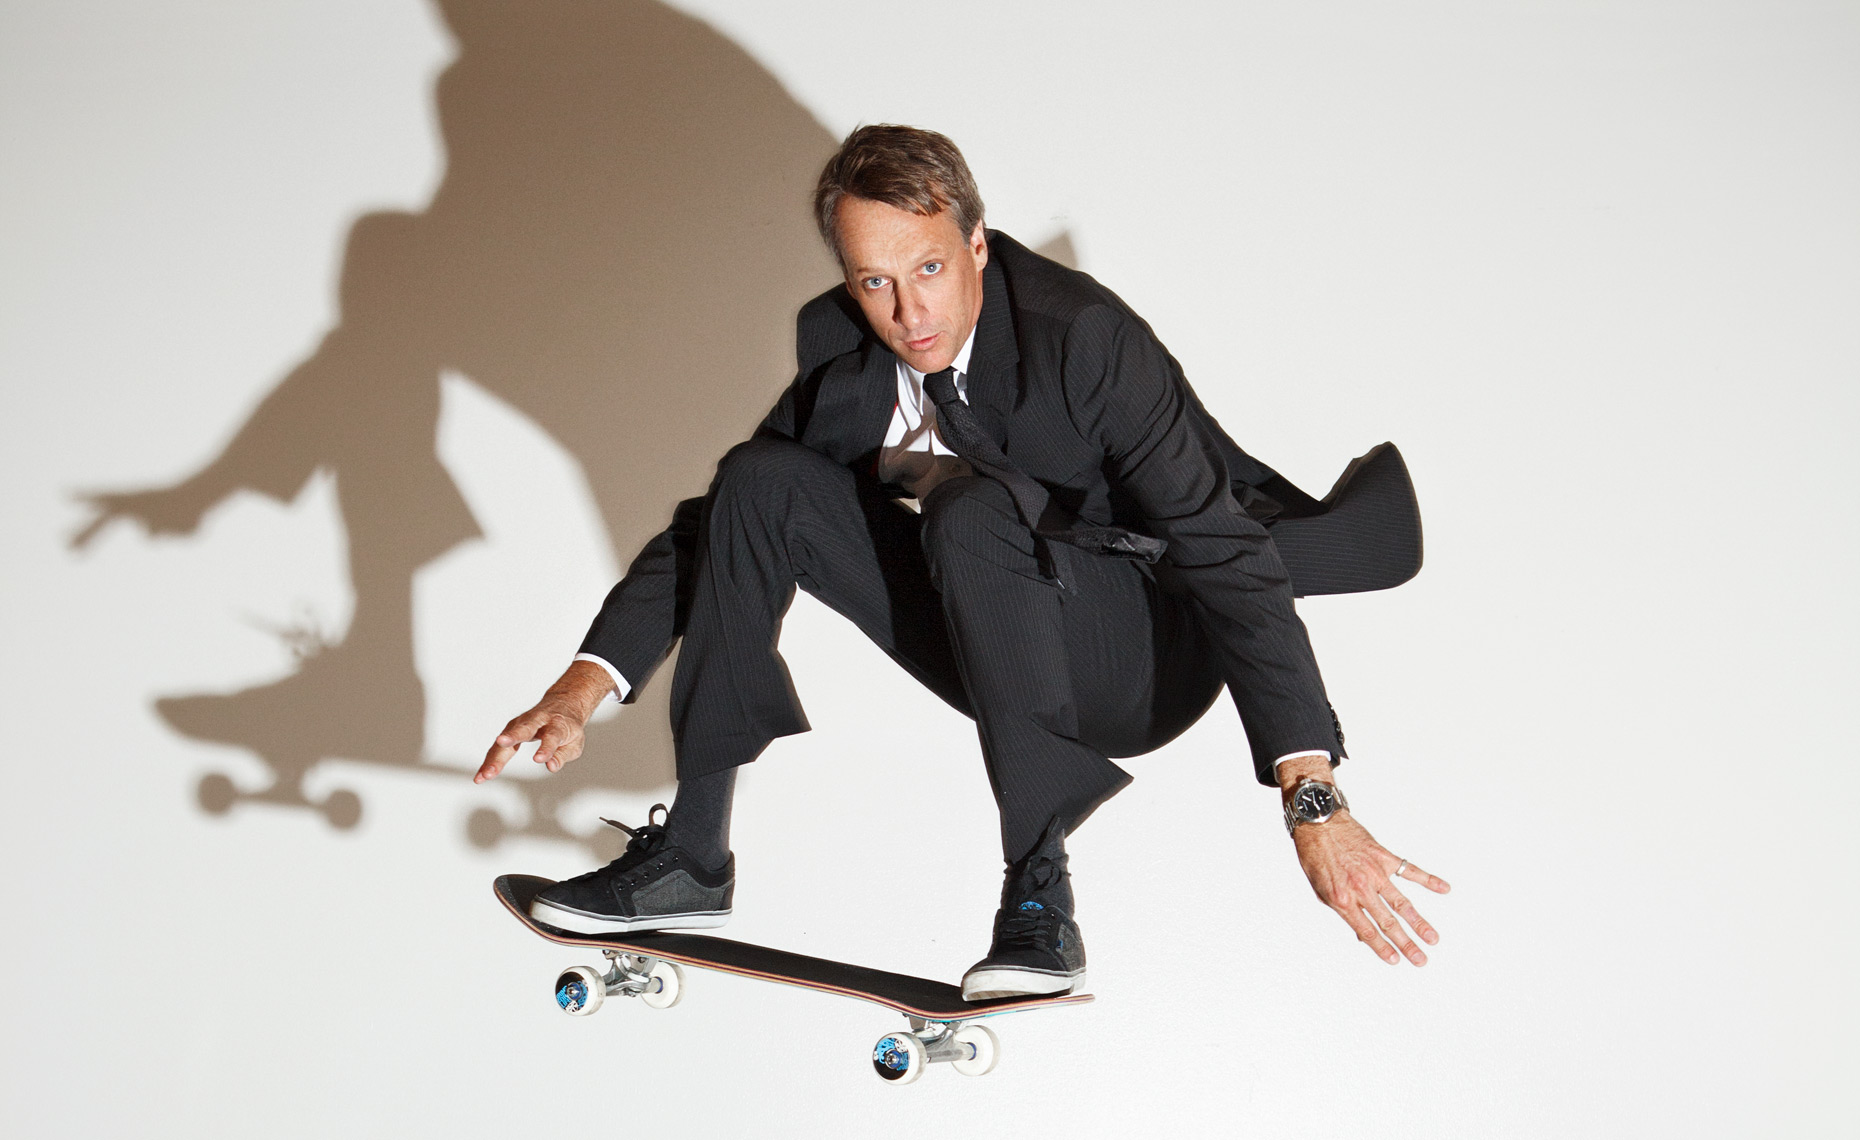 Skateboarder Tony Hawk © Dale May